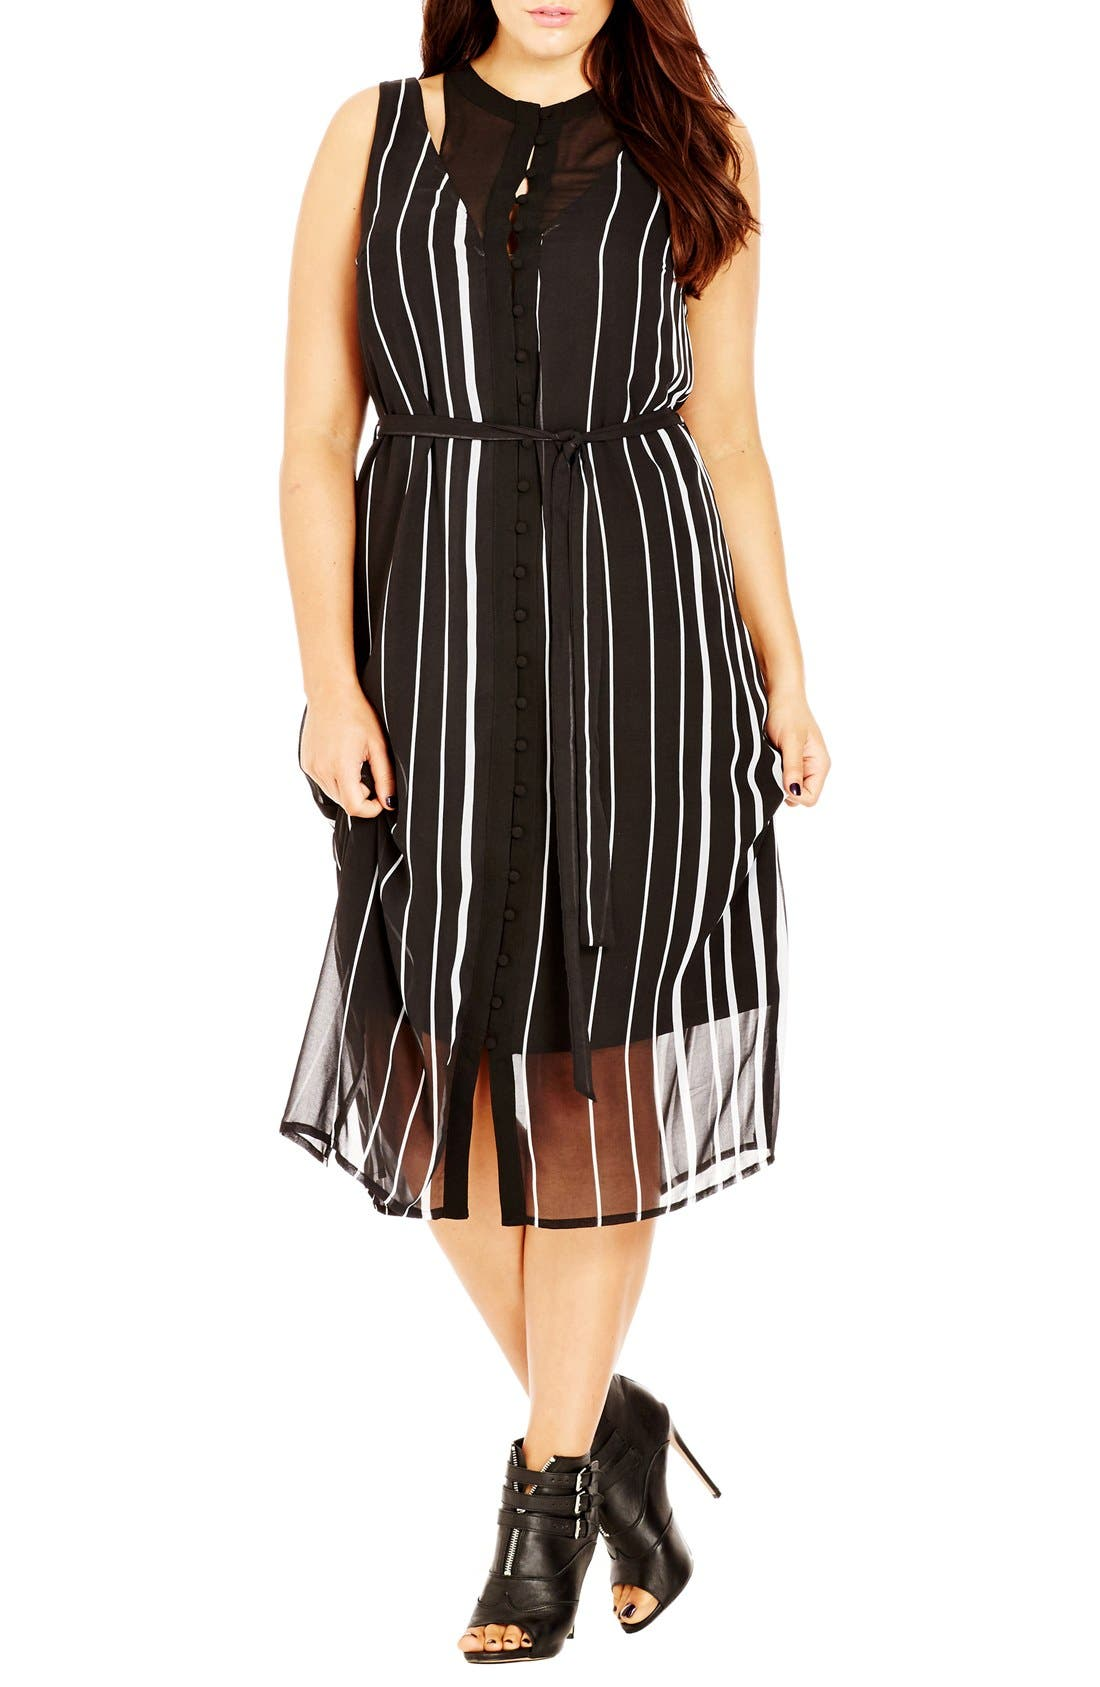 Alternate Image 1 Selected - City Chic 'Office Romance' Sheer Overlay Dress (Plus Size)